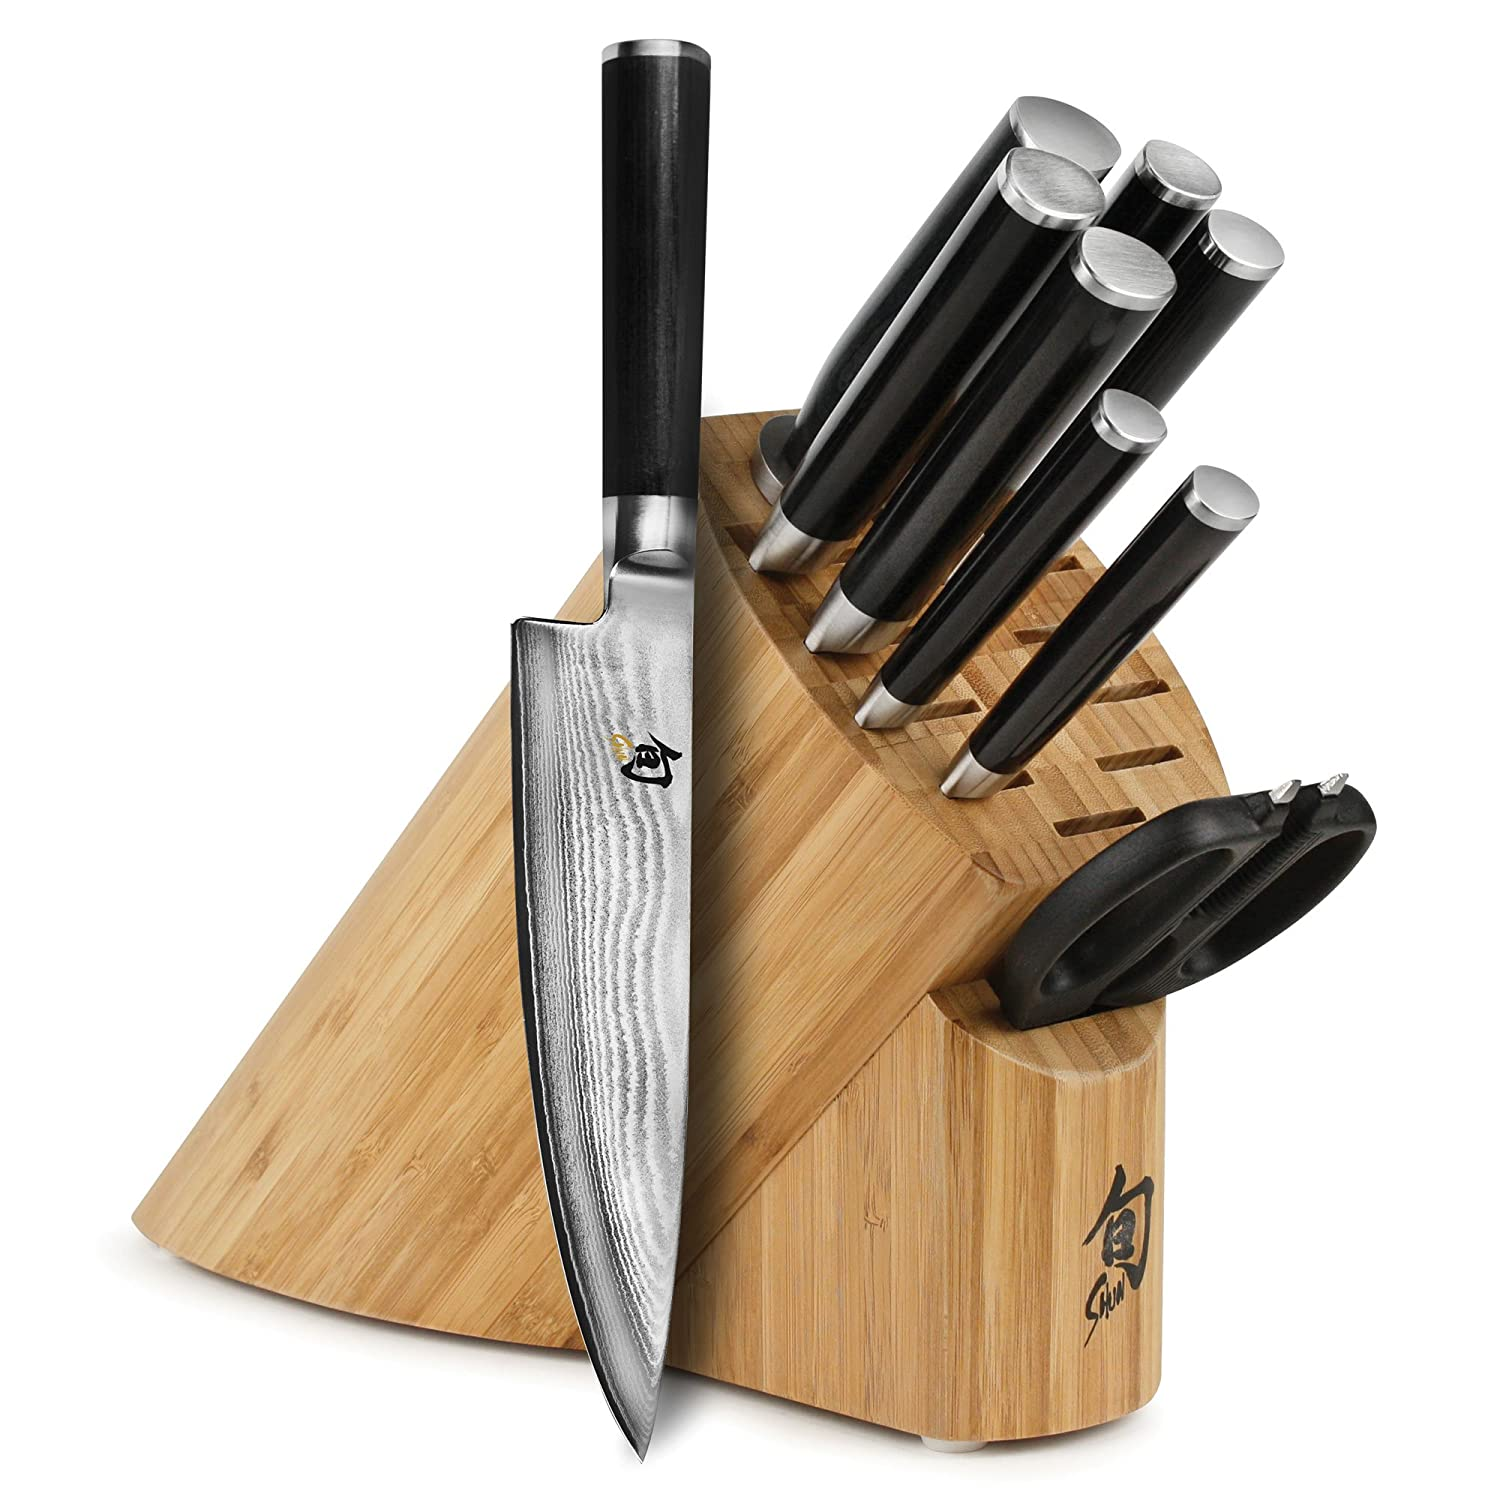 who makes the best knives for kitchen best kitchen knife sets 2019 options for every budget the kitchen witches 7178